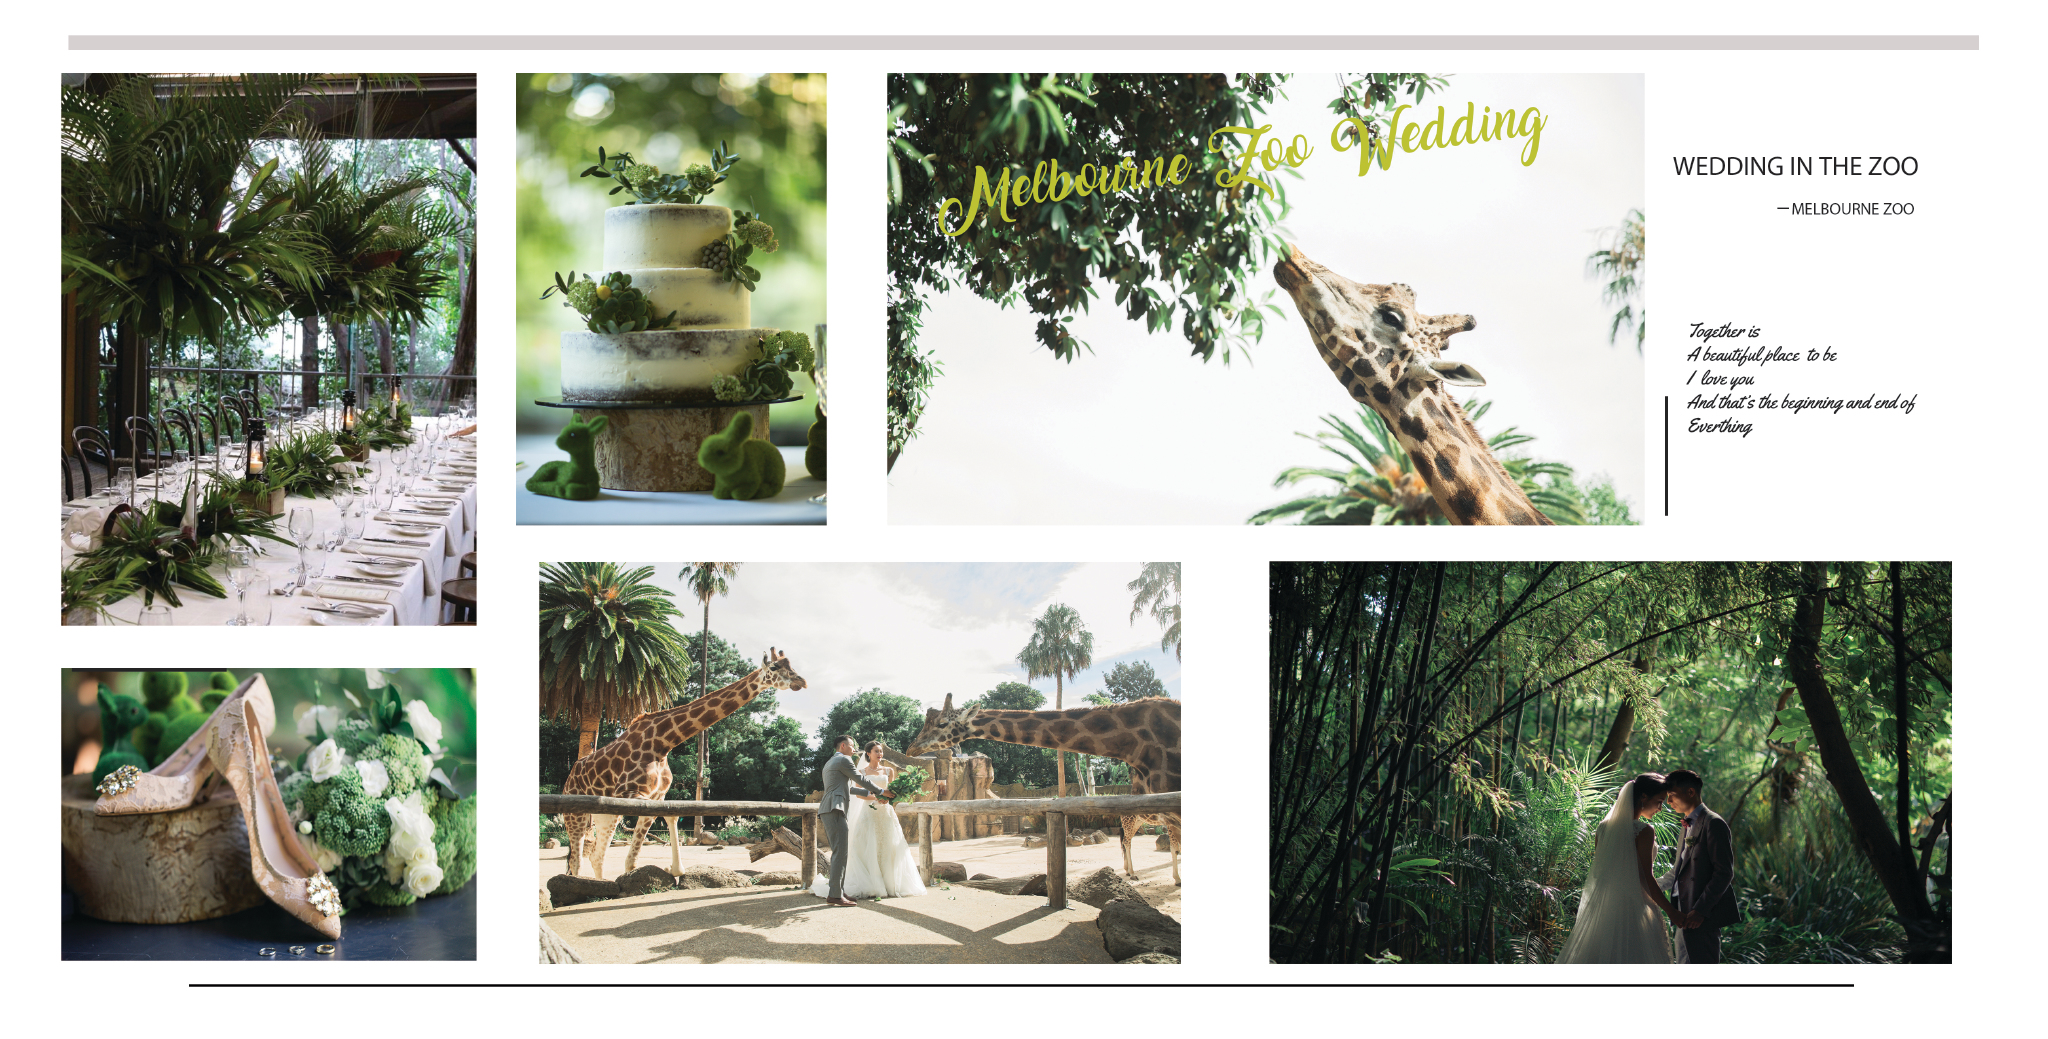 wedding planning Melbourne wedding theme idea wedding in the zoo